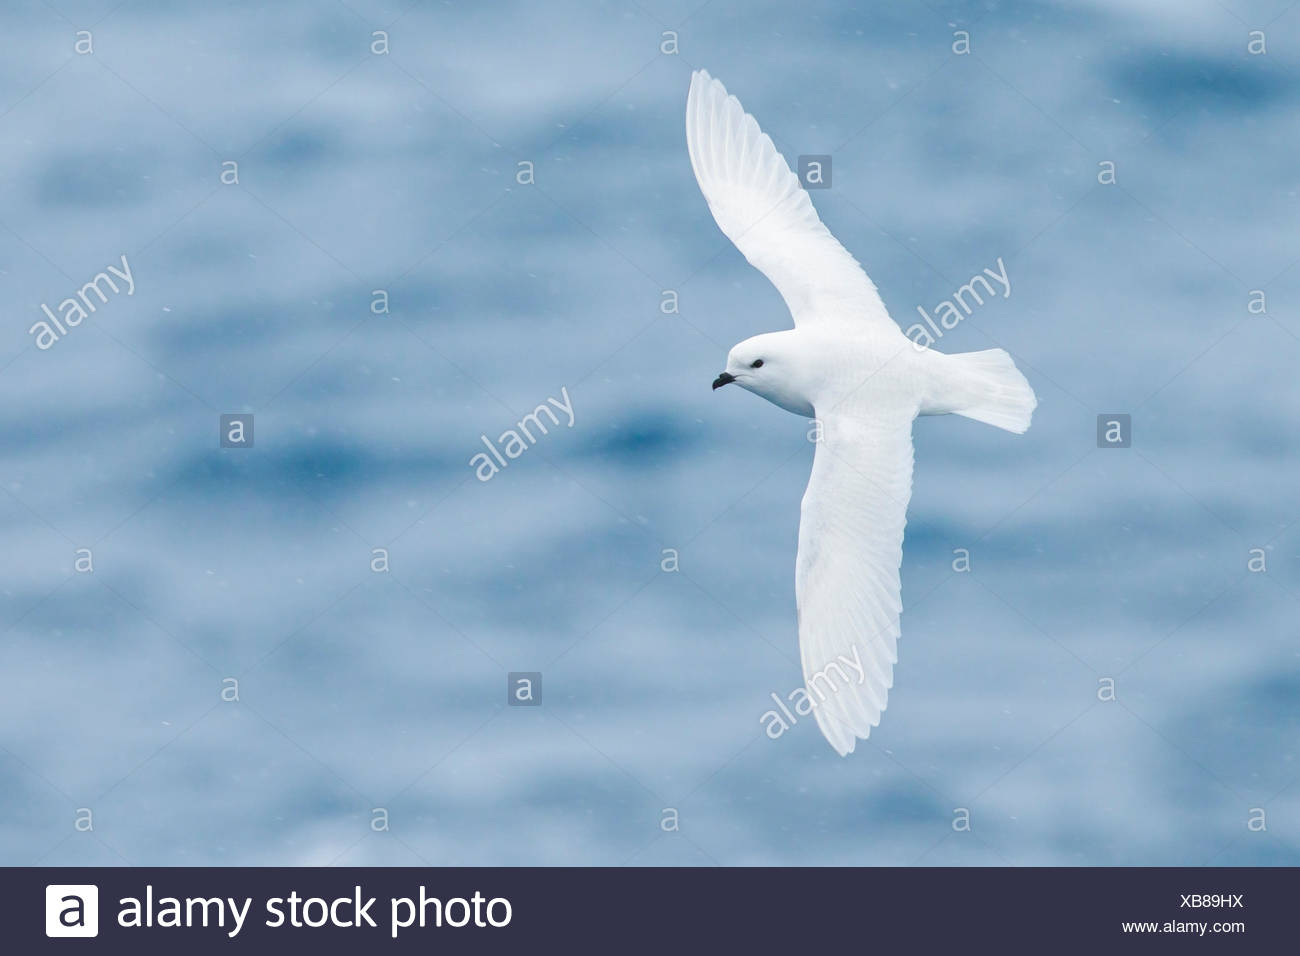 Snow Petrel (Pagodroma nivea) flying over the ocean searching for food near South Georgia Island. Stock Photo